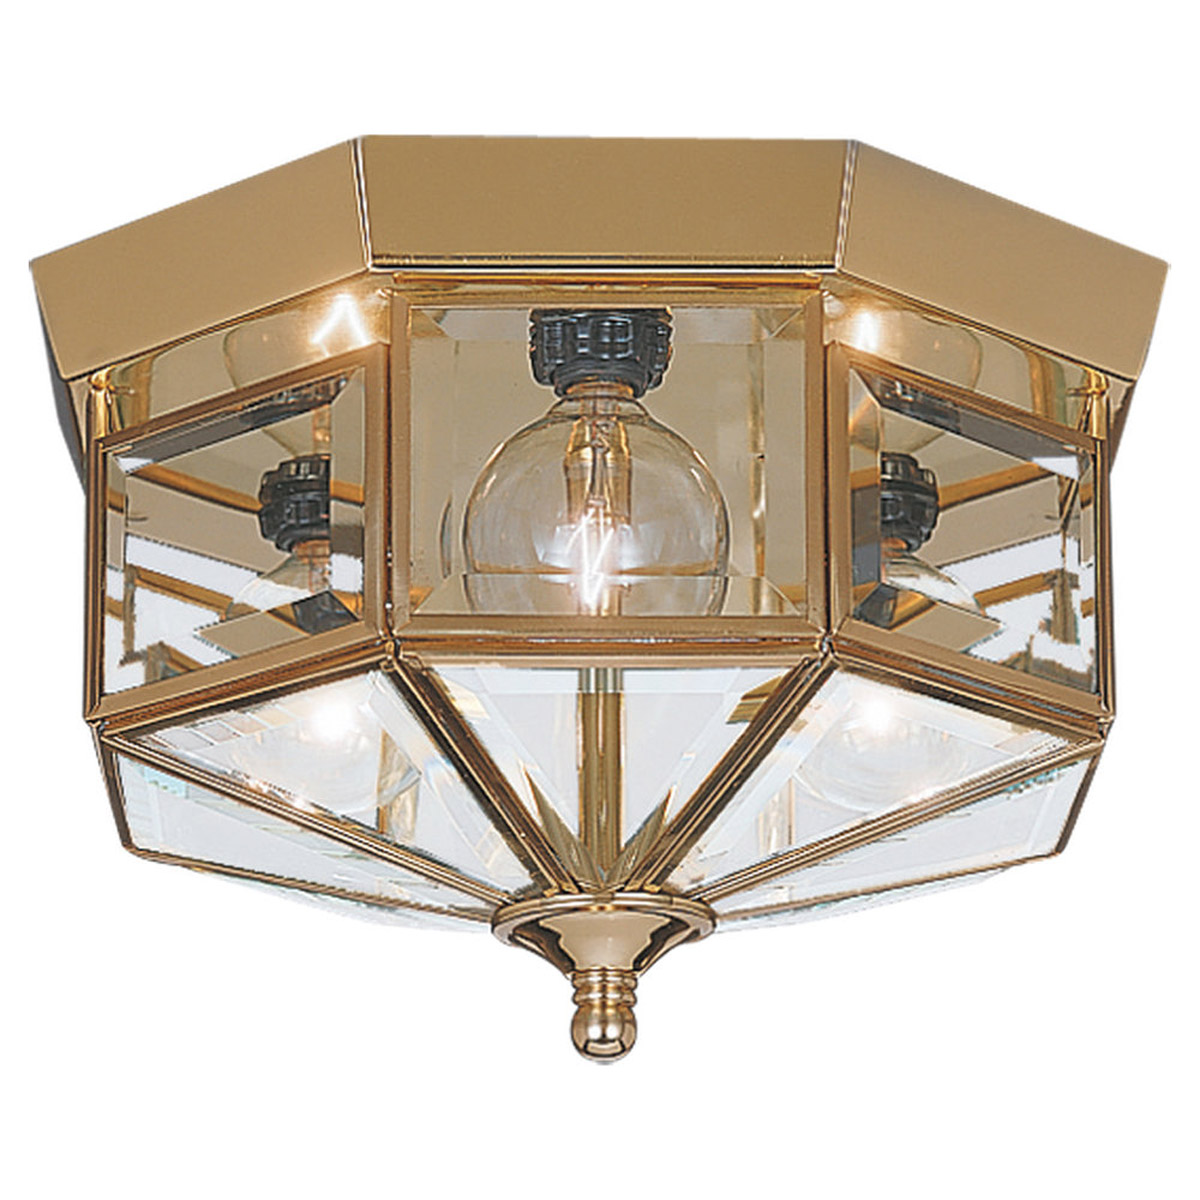 Sea Gull Lighting Grandover 3 Light Flush Mount in Polished Brass 7661-02 photo